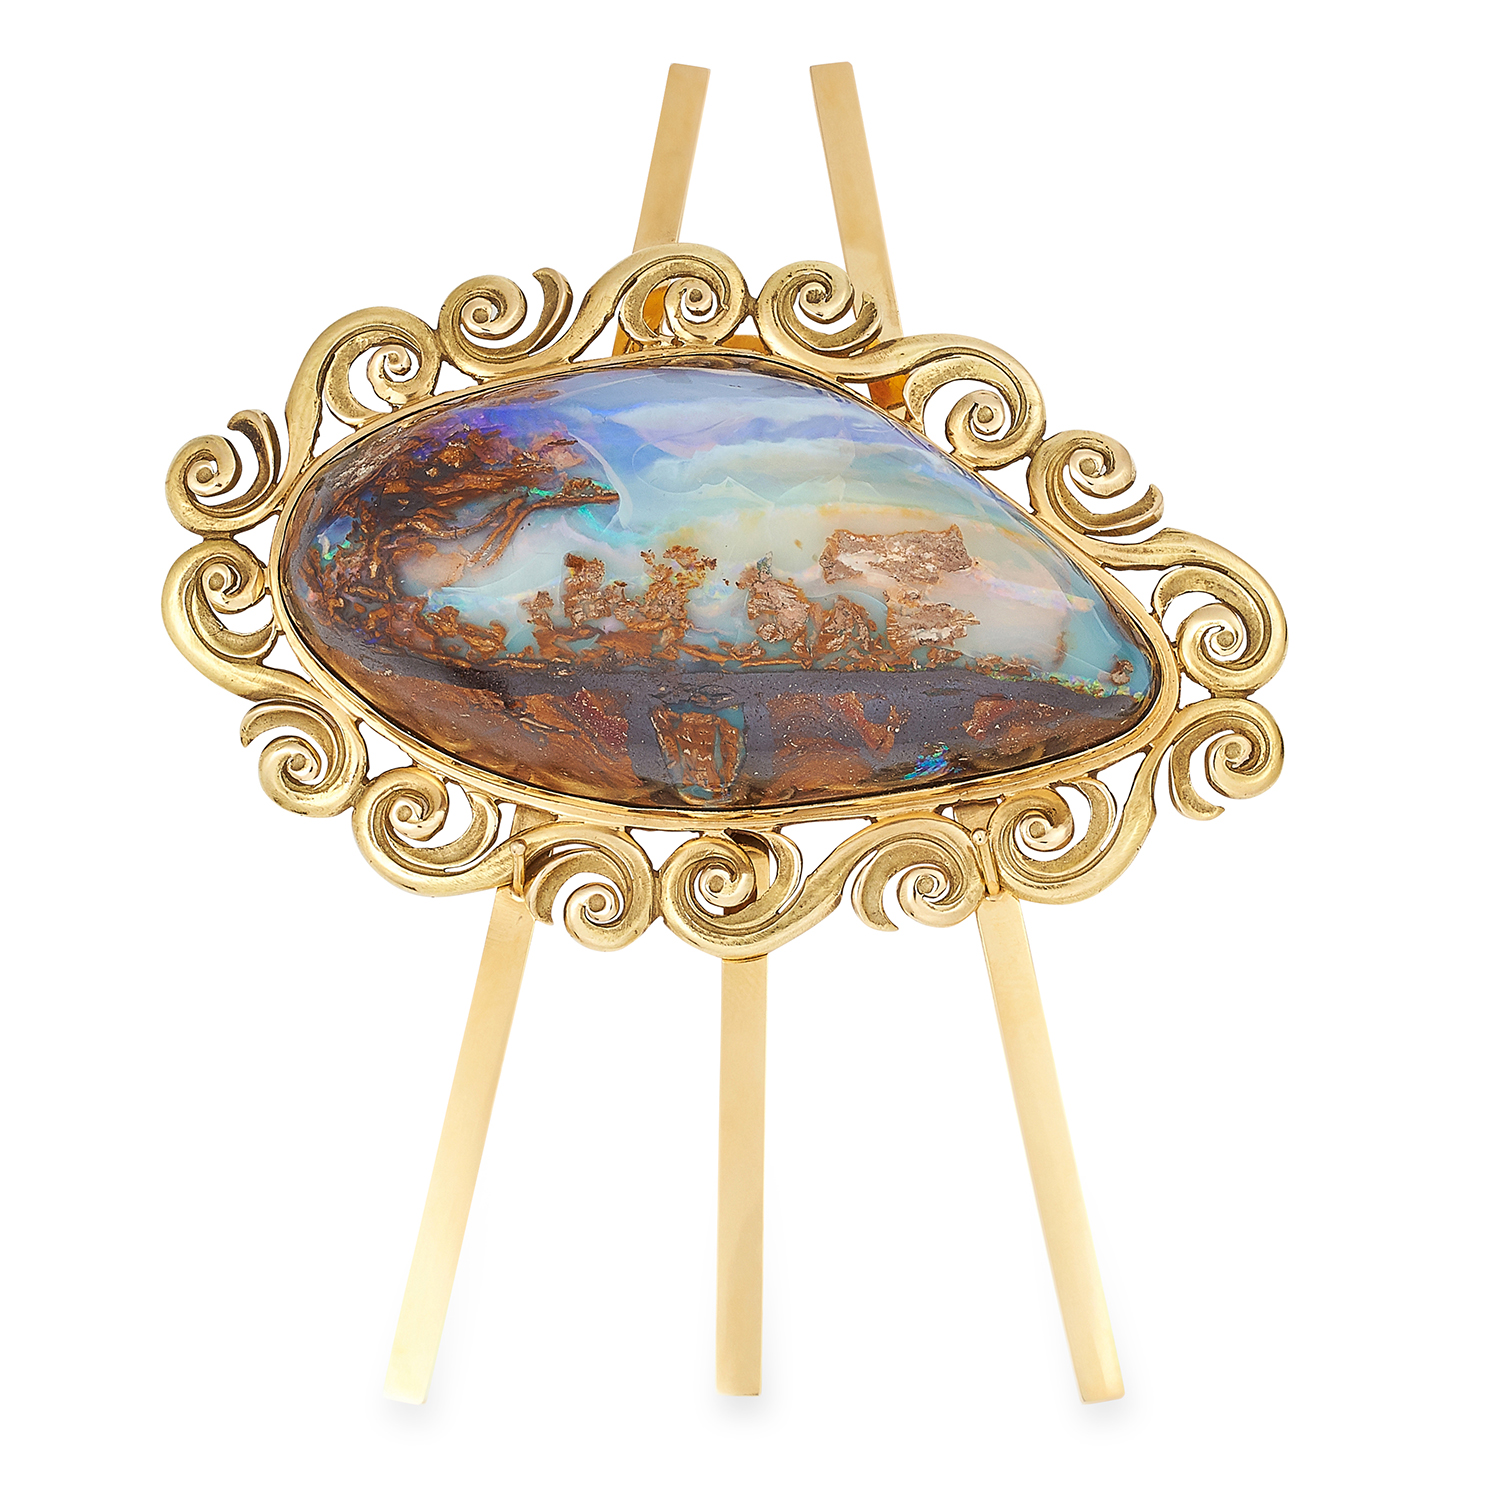 Los 311 - ORNAMENTAL BOULDER OPAL SPECIMEN MOUNTED ON A GOLD EASEL STAND, COLLINGWOOD, CIRCA 1970 resembling a